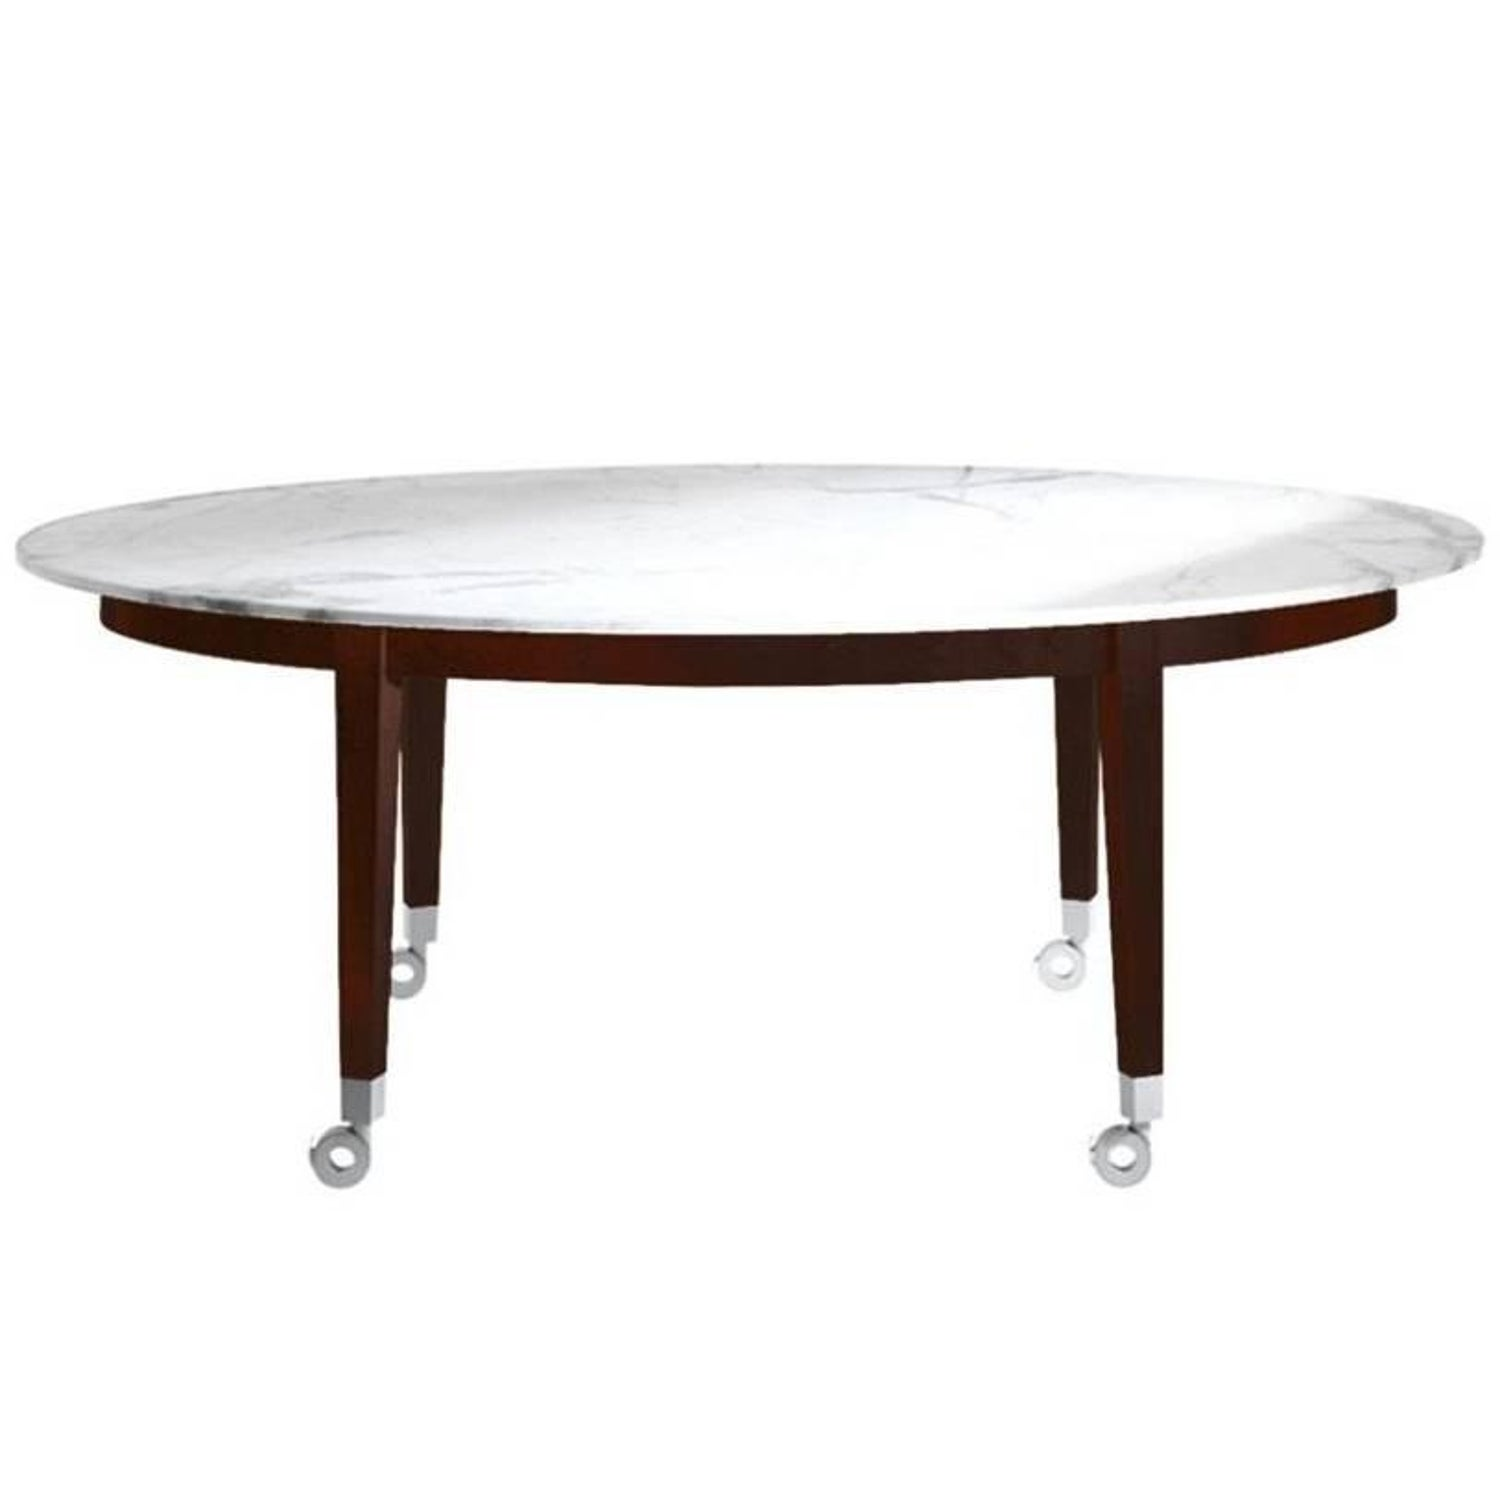 Philippe starck dining table images dining table ideas for Philippe starck tables